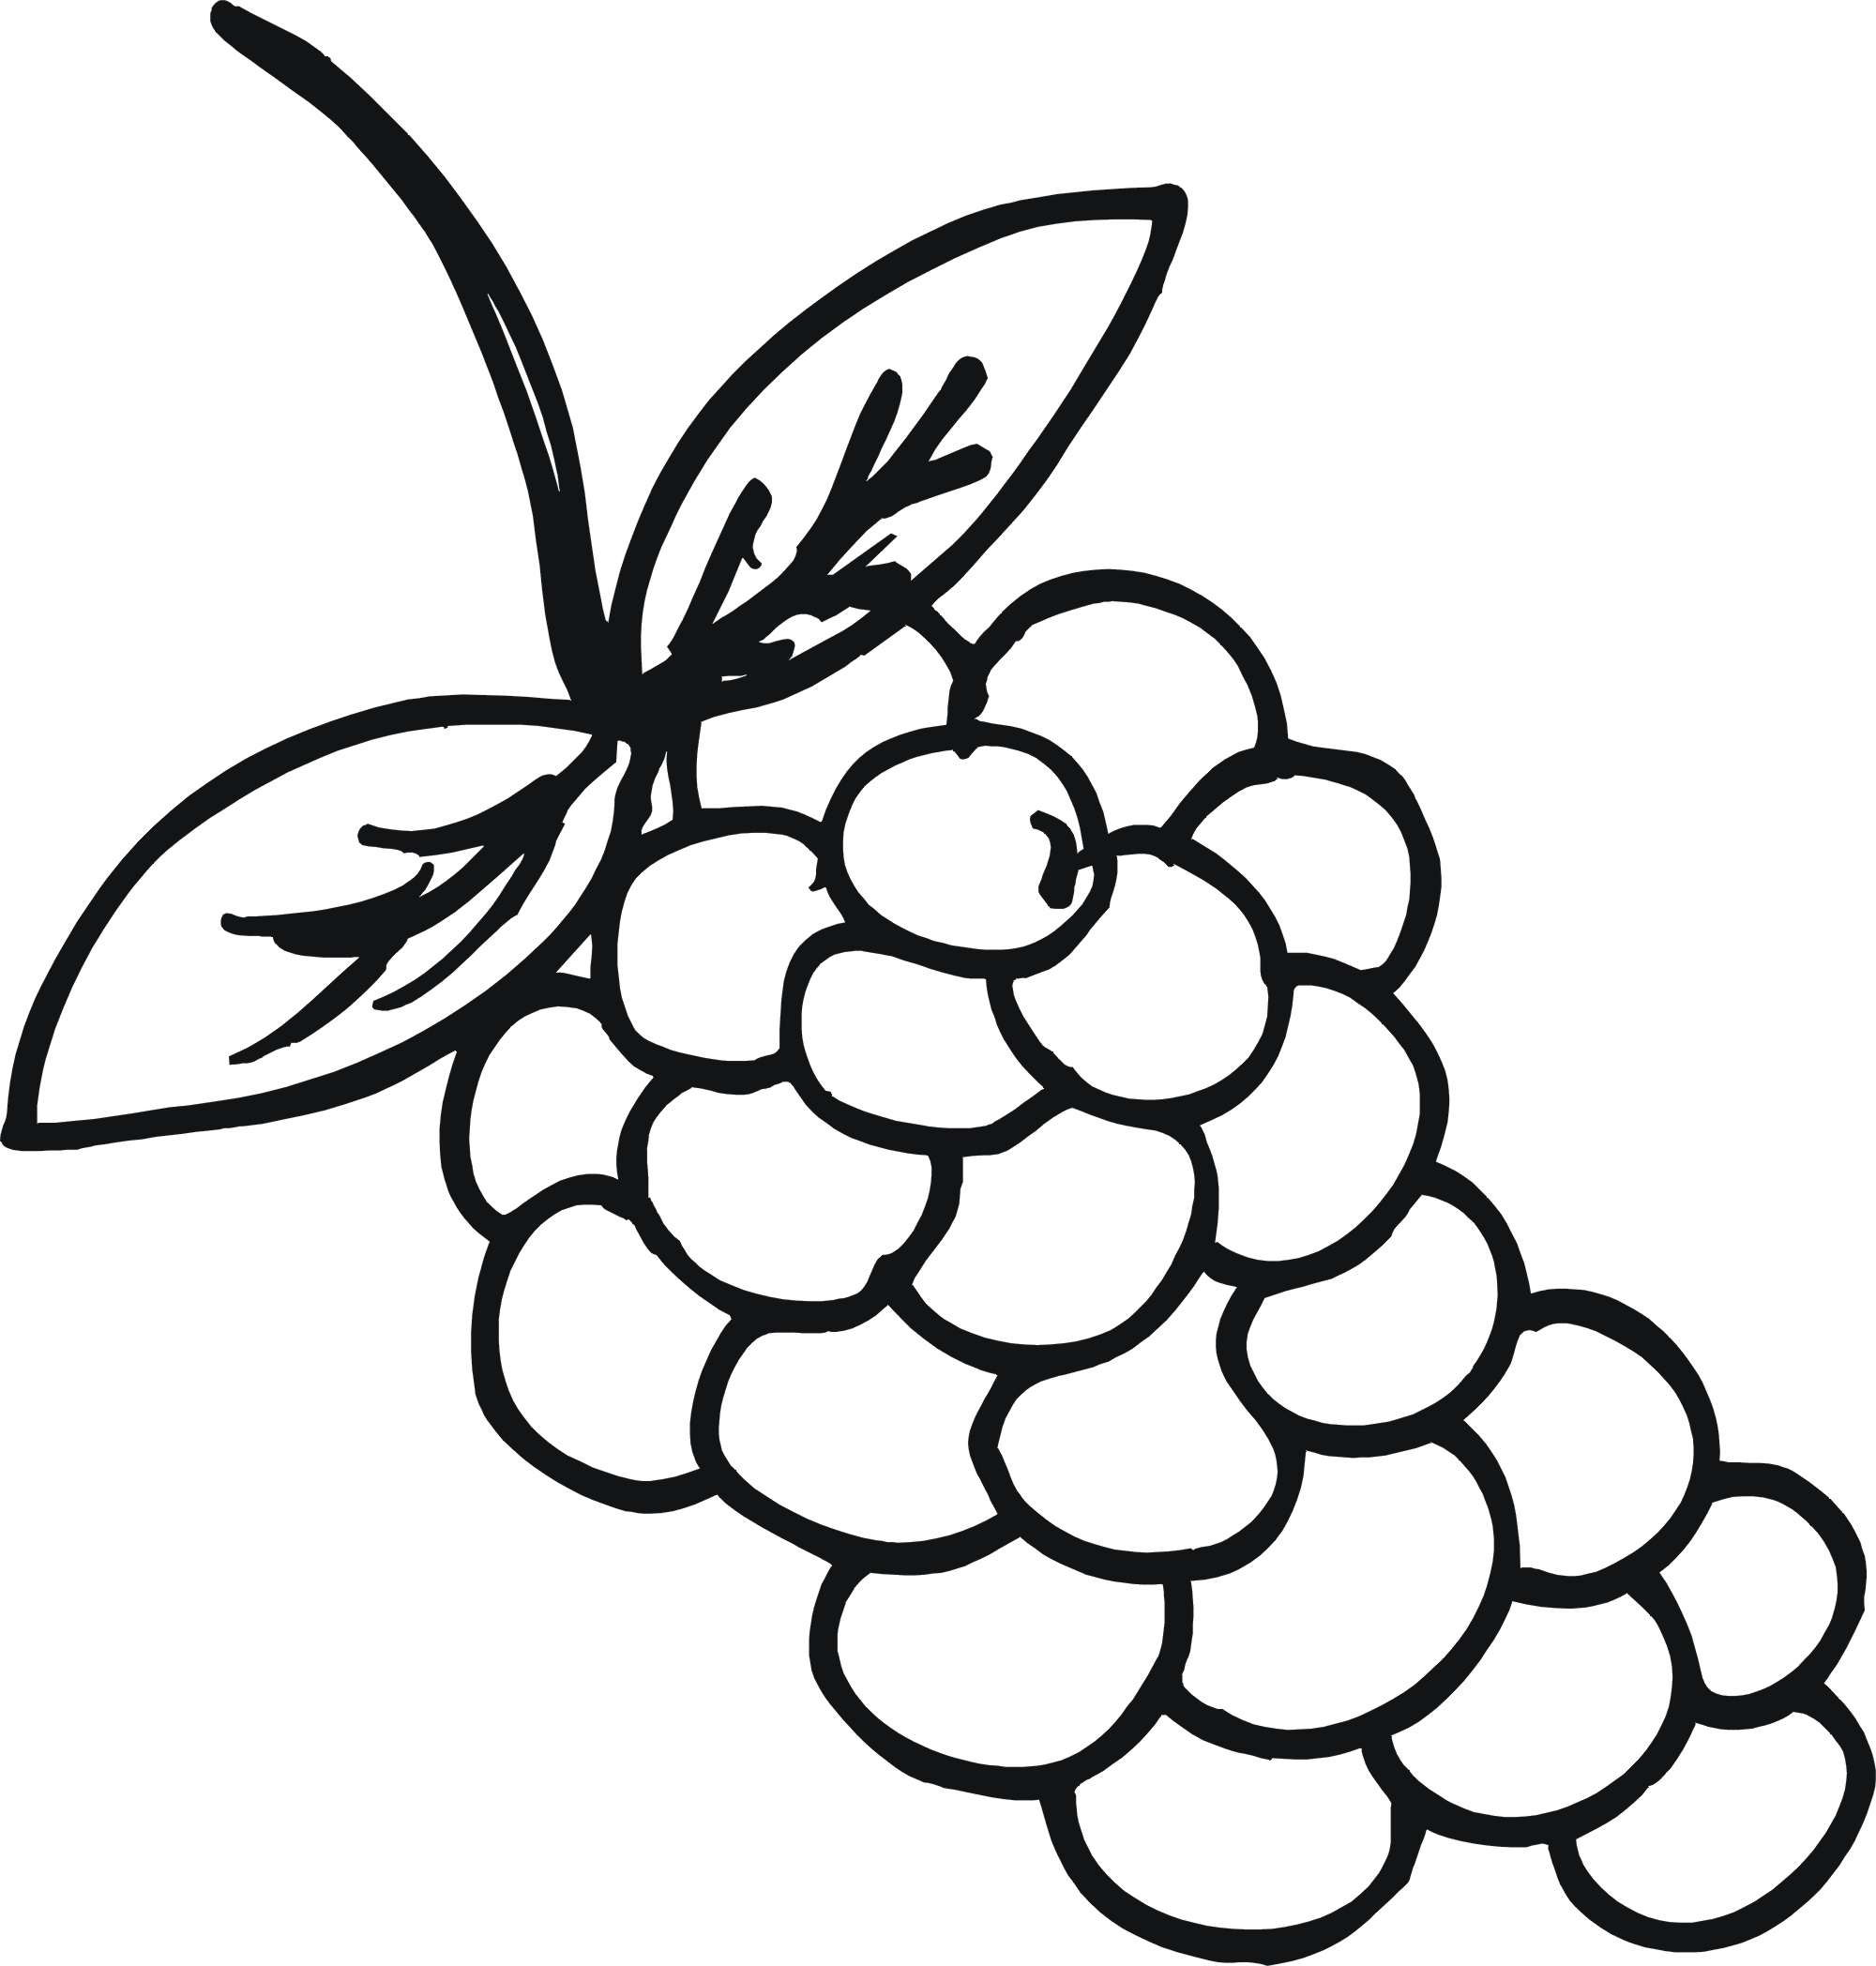 2000x2096 Shining Inspiration Food Coloring Pages Download Grapes Page